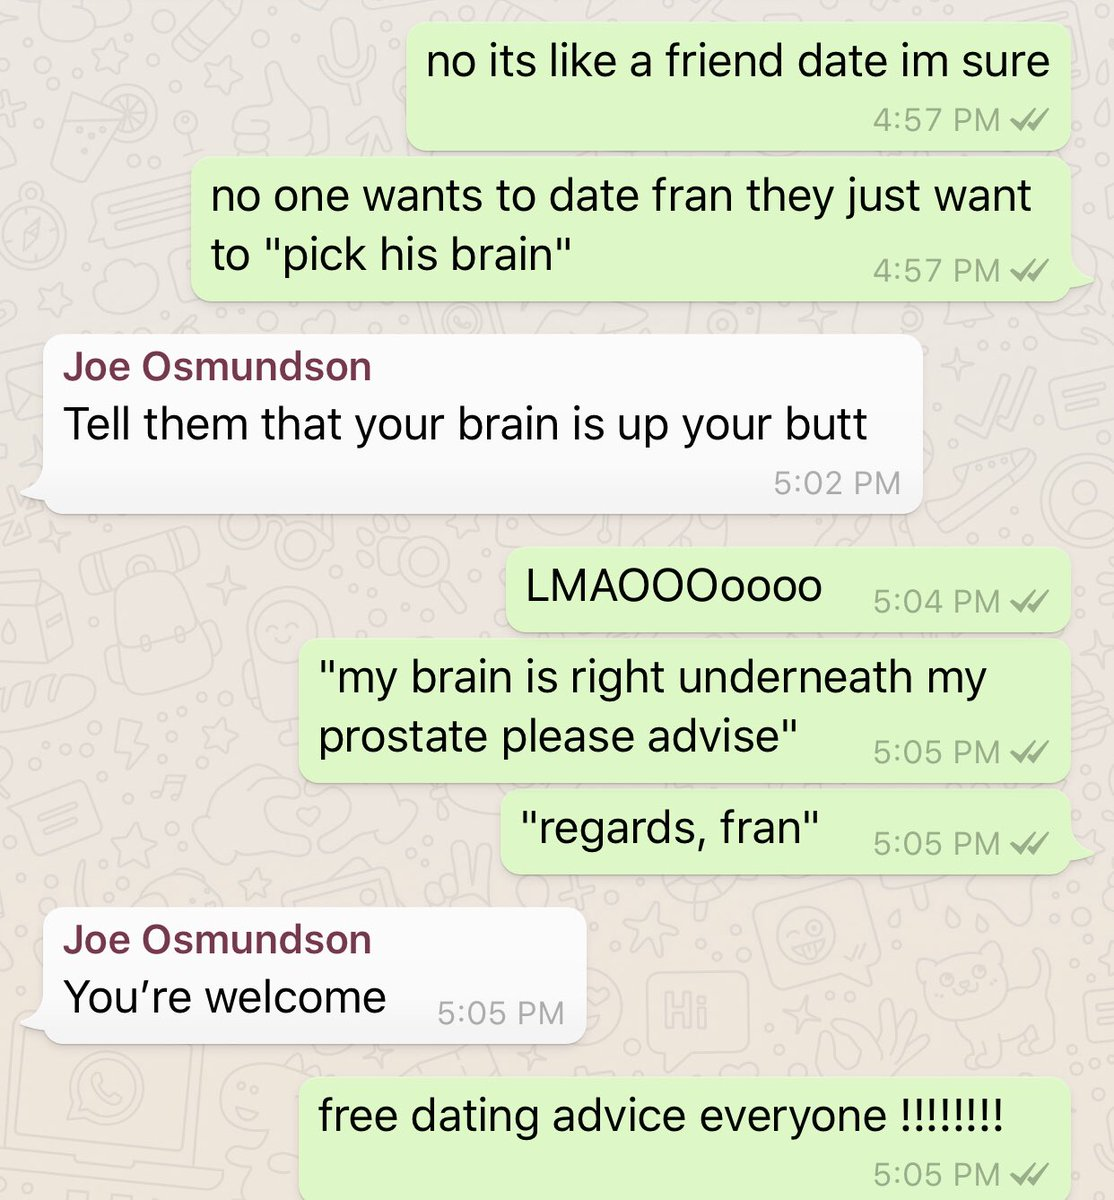 Free dating site advise or advice